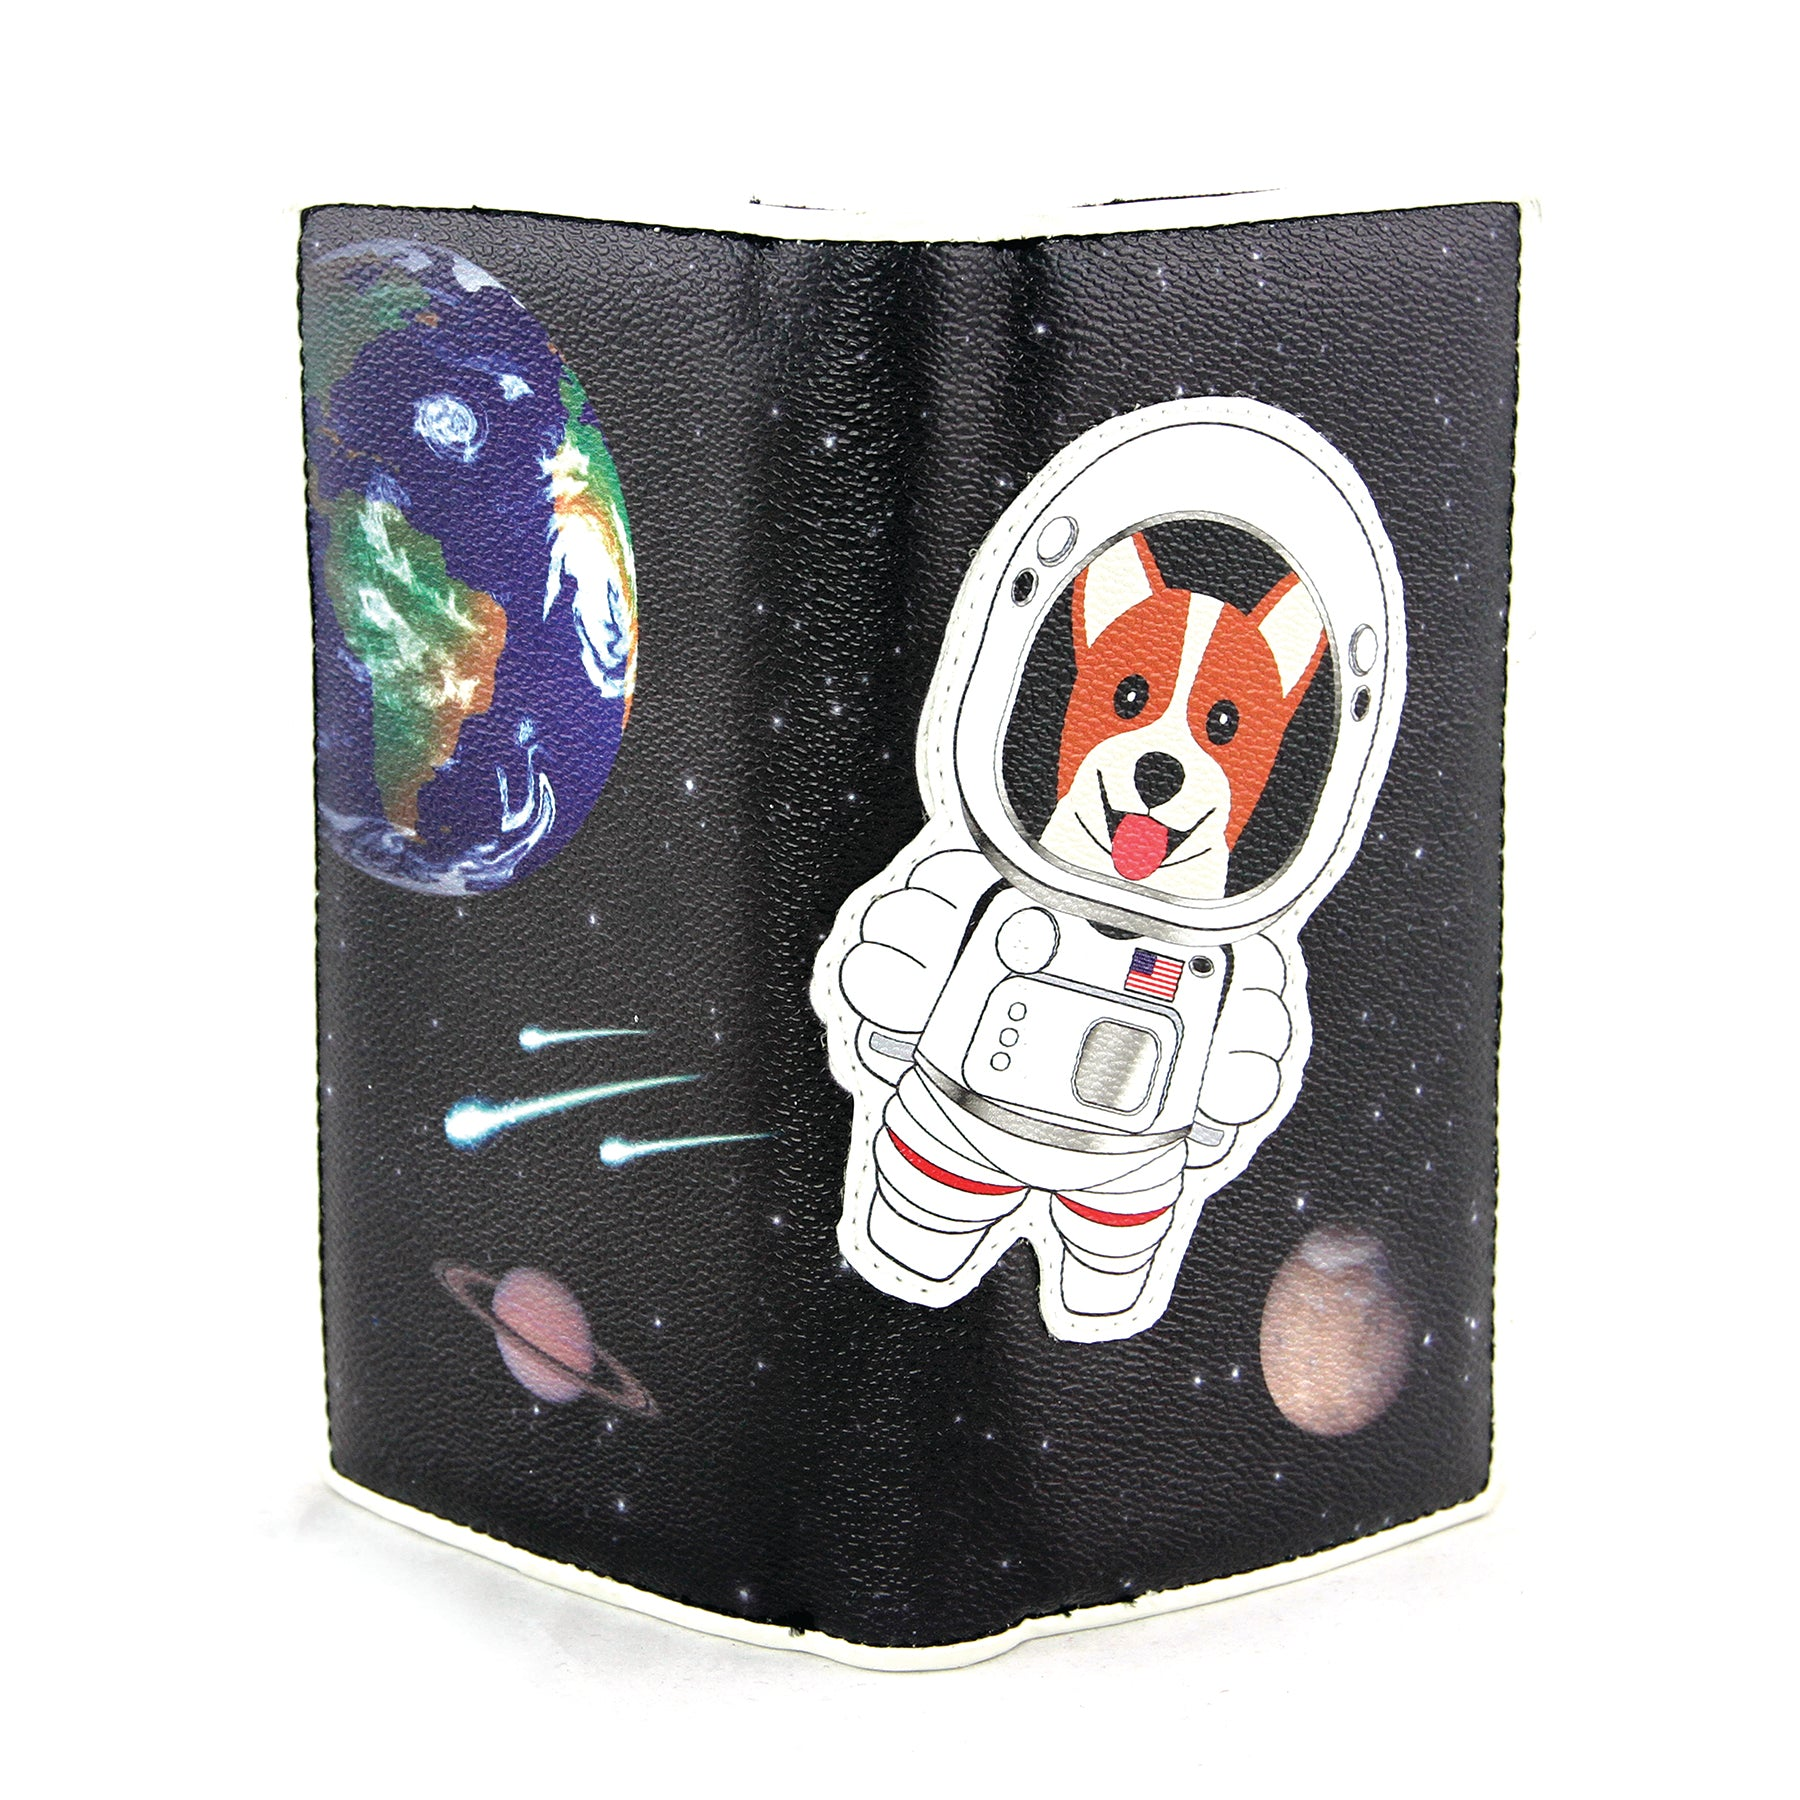 Corgi Astronaut in Space Wallet in Vinyl Material frontal view